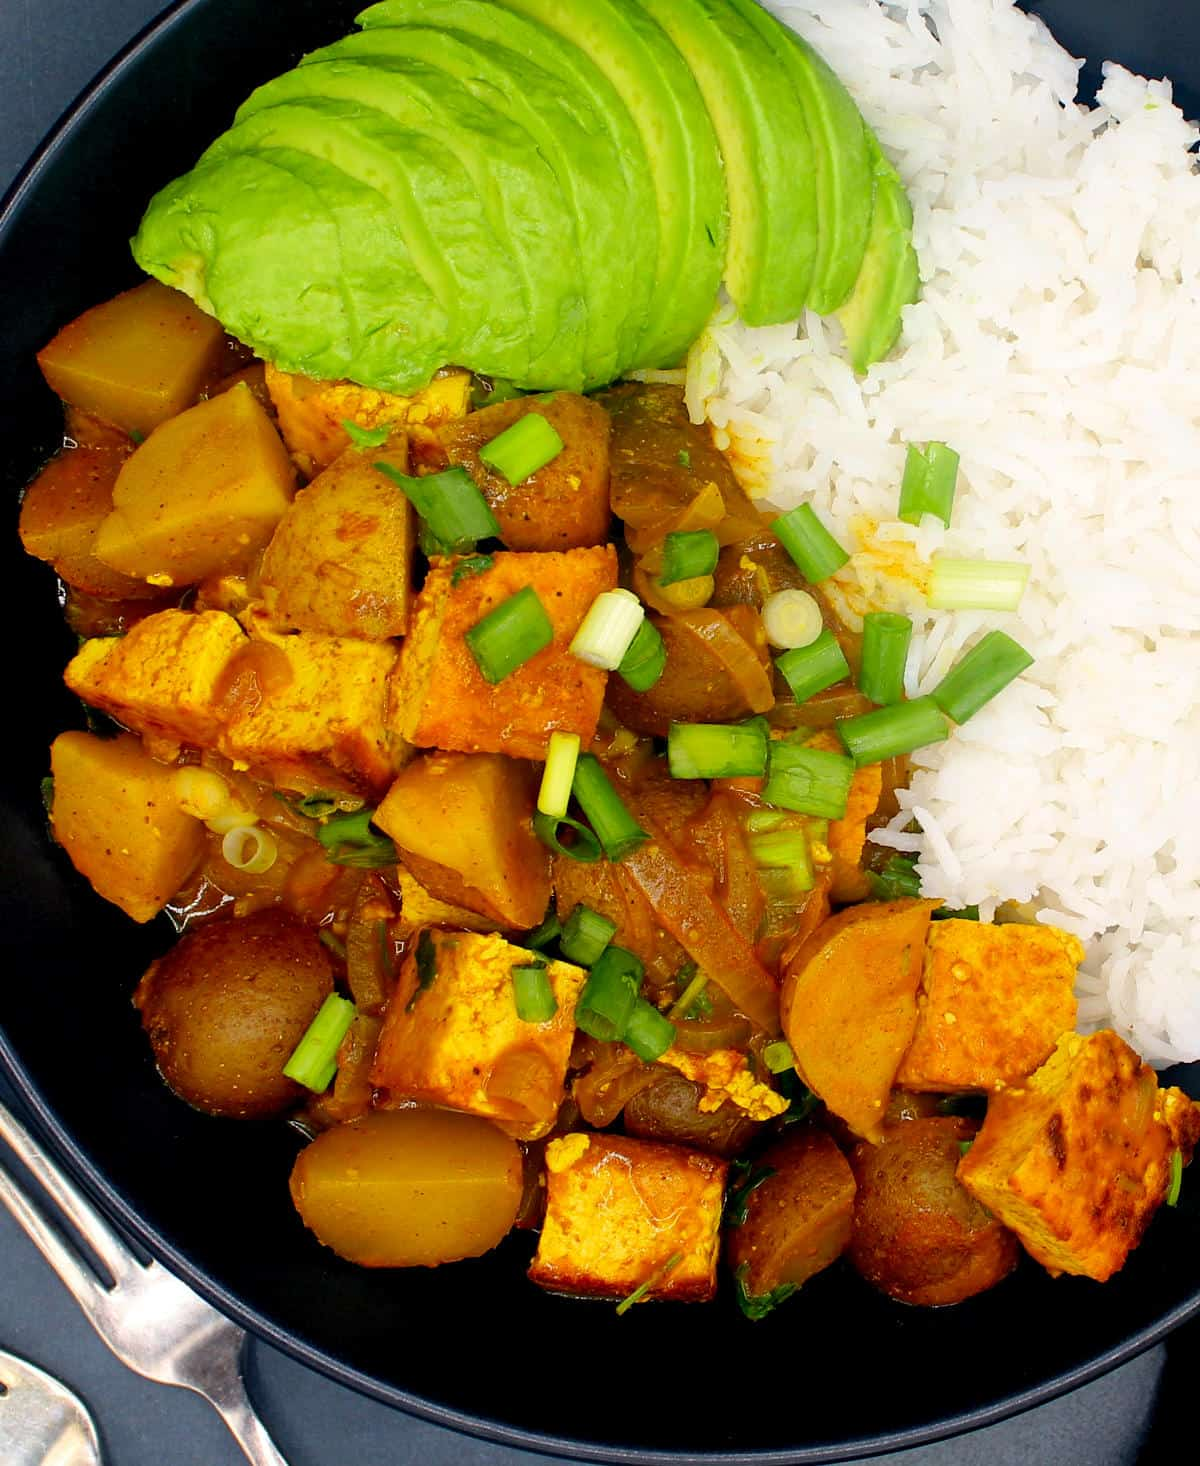 Closeup of Vegan Jamaican Curry with tofu and potatoes in a black bowl with scallions, avocado slices and white rice and two forks.